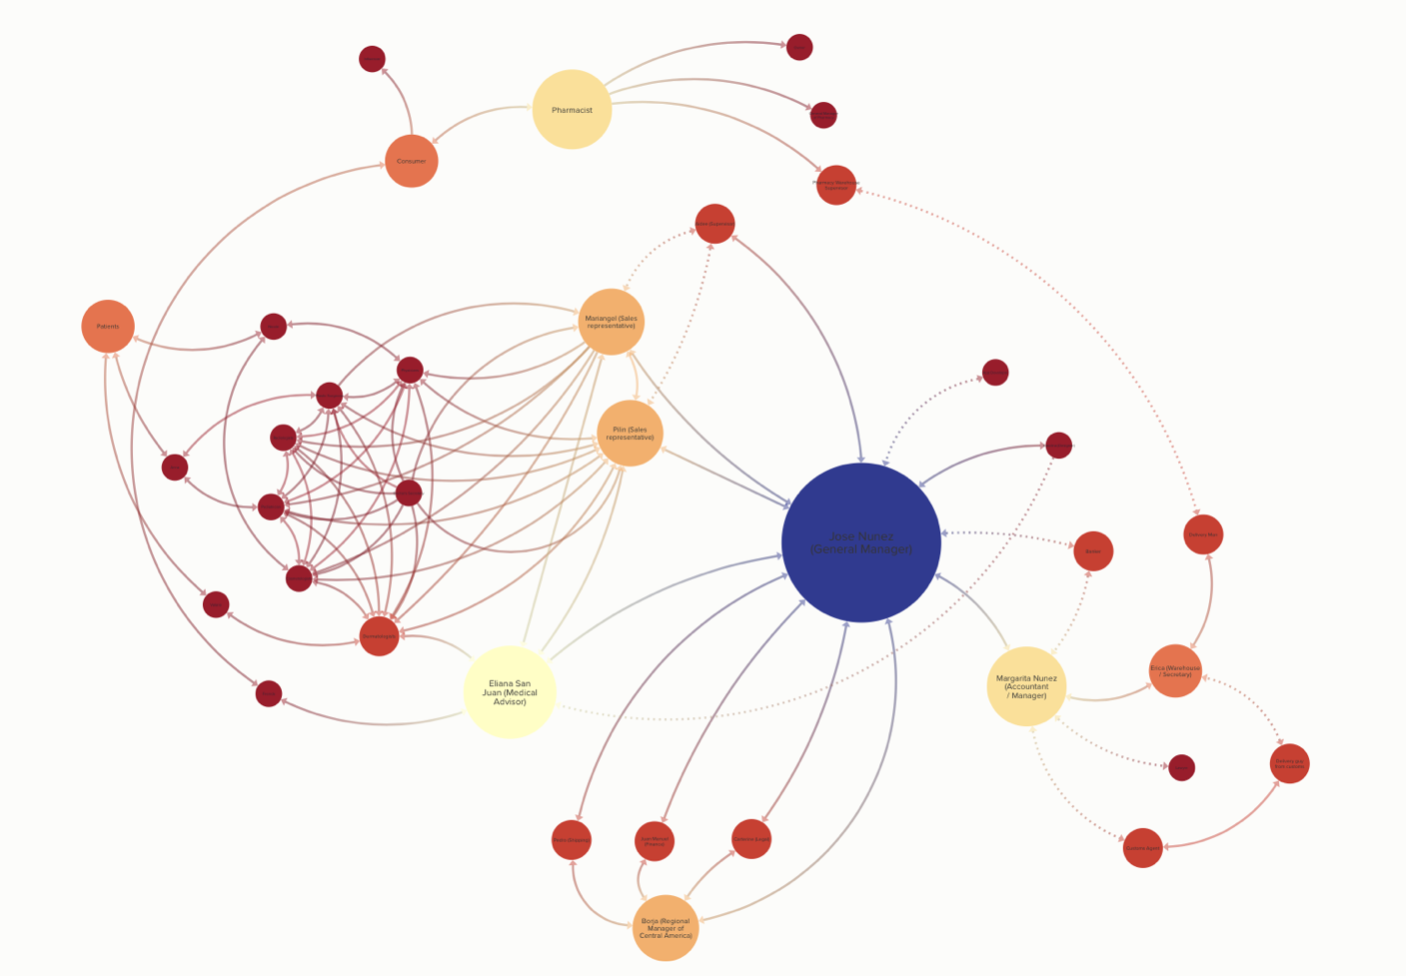 The company interaction map tracks the communication aspect of different employees within the company and individuals who are directly associate with Uniderma products. It shows the back channels of casual conversation all the way to product conferences with medical doctors. This map helps us understand how products are being sold, formally and informally, as well as possible avenues for other products to be sold in the future.